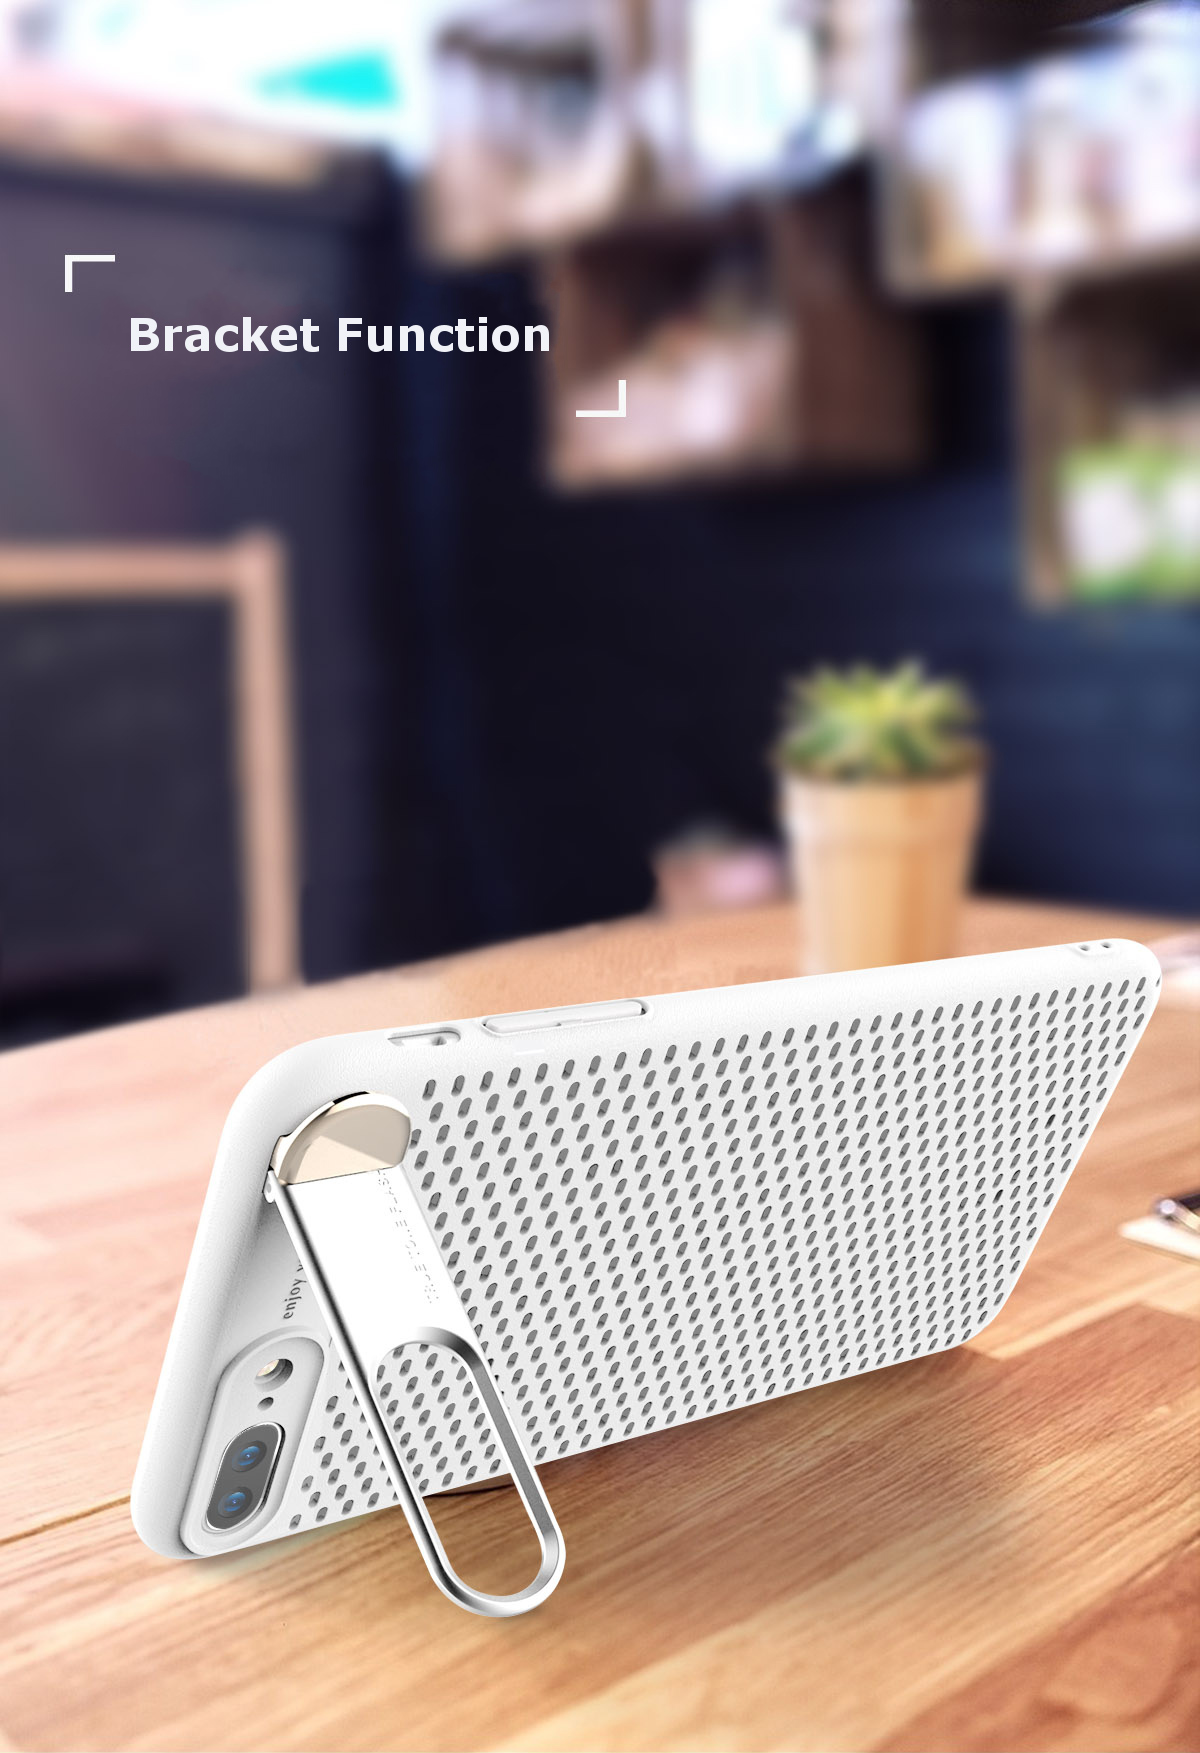 Bakeey Bracket Dissipating Heat Hard PC Case for iPhone 7/8 7Plus/8Plus